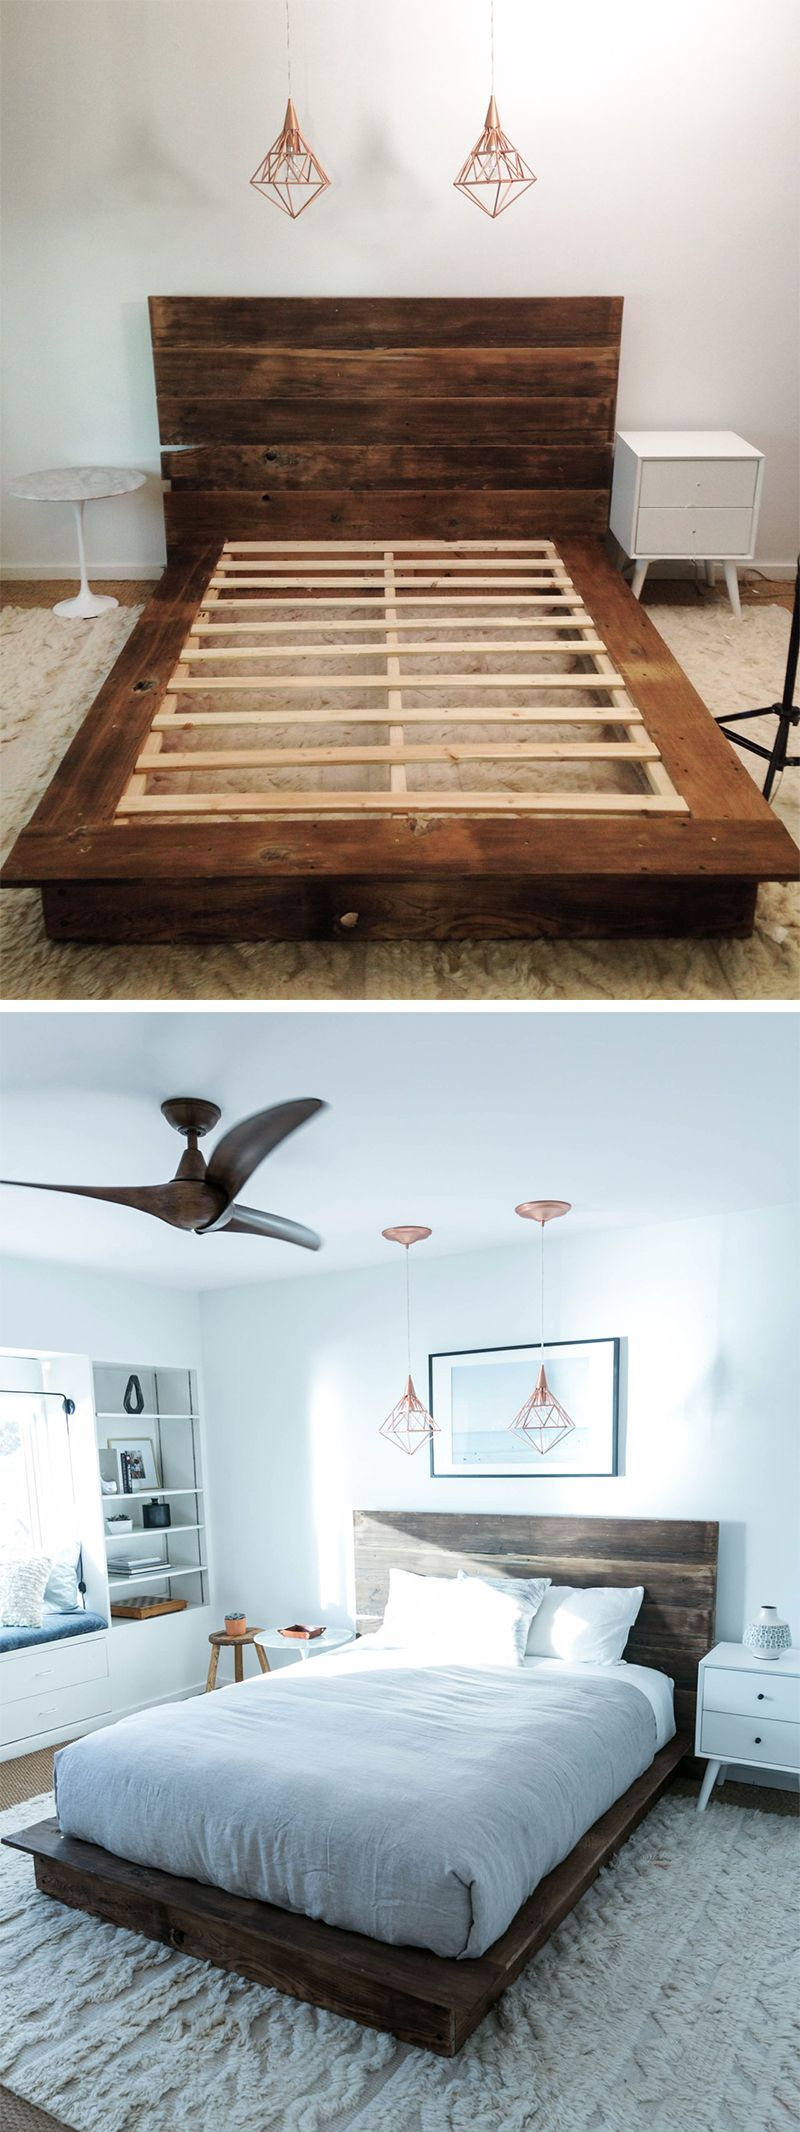 Diy overbed table - Diy Space Saving Bed Frame Design Free Plans Instructions Ikea Kitchen Cabinets And Design